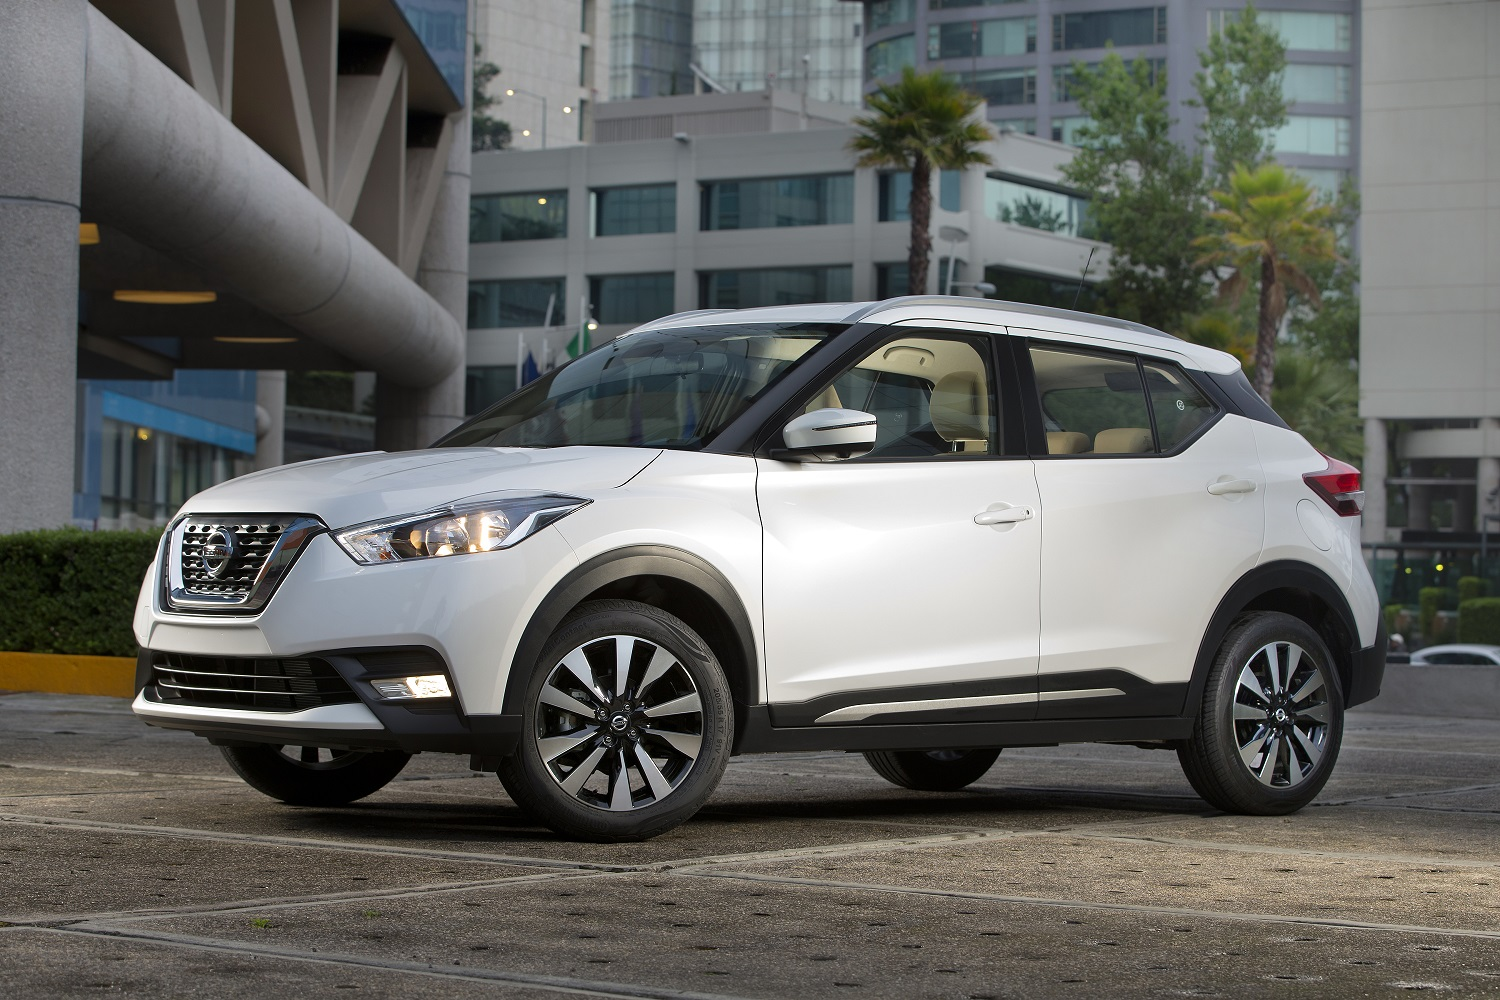 2013 honda crv with Nissan Kicks 2017  Petencia Mexico on Watch besides Watch likewise 1 0 1 further Watch likewise Watch.